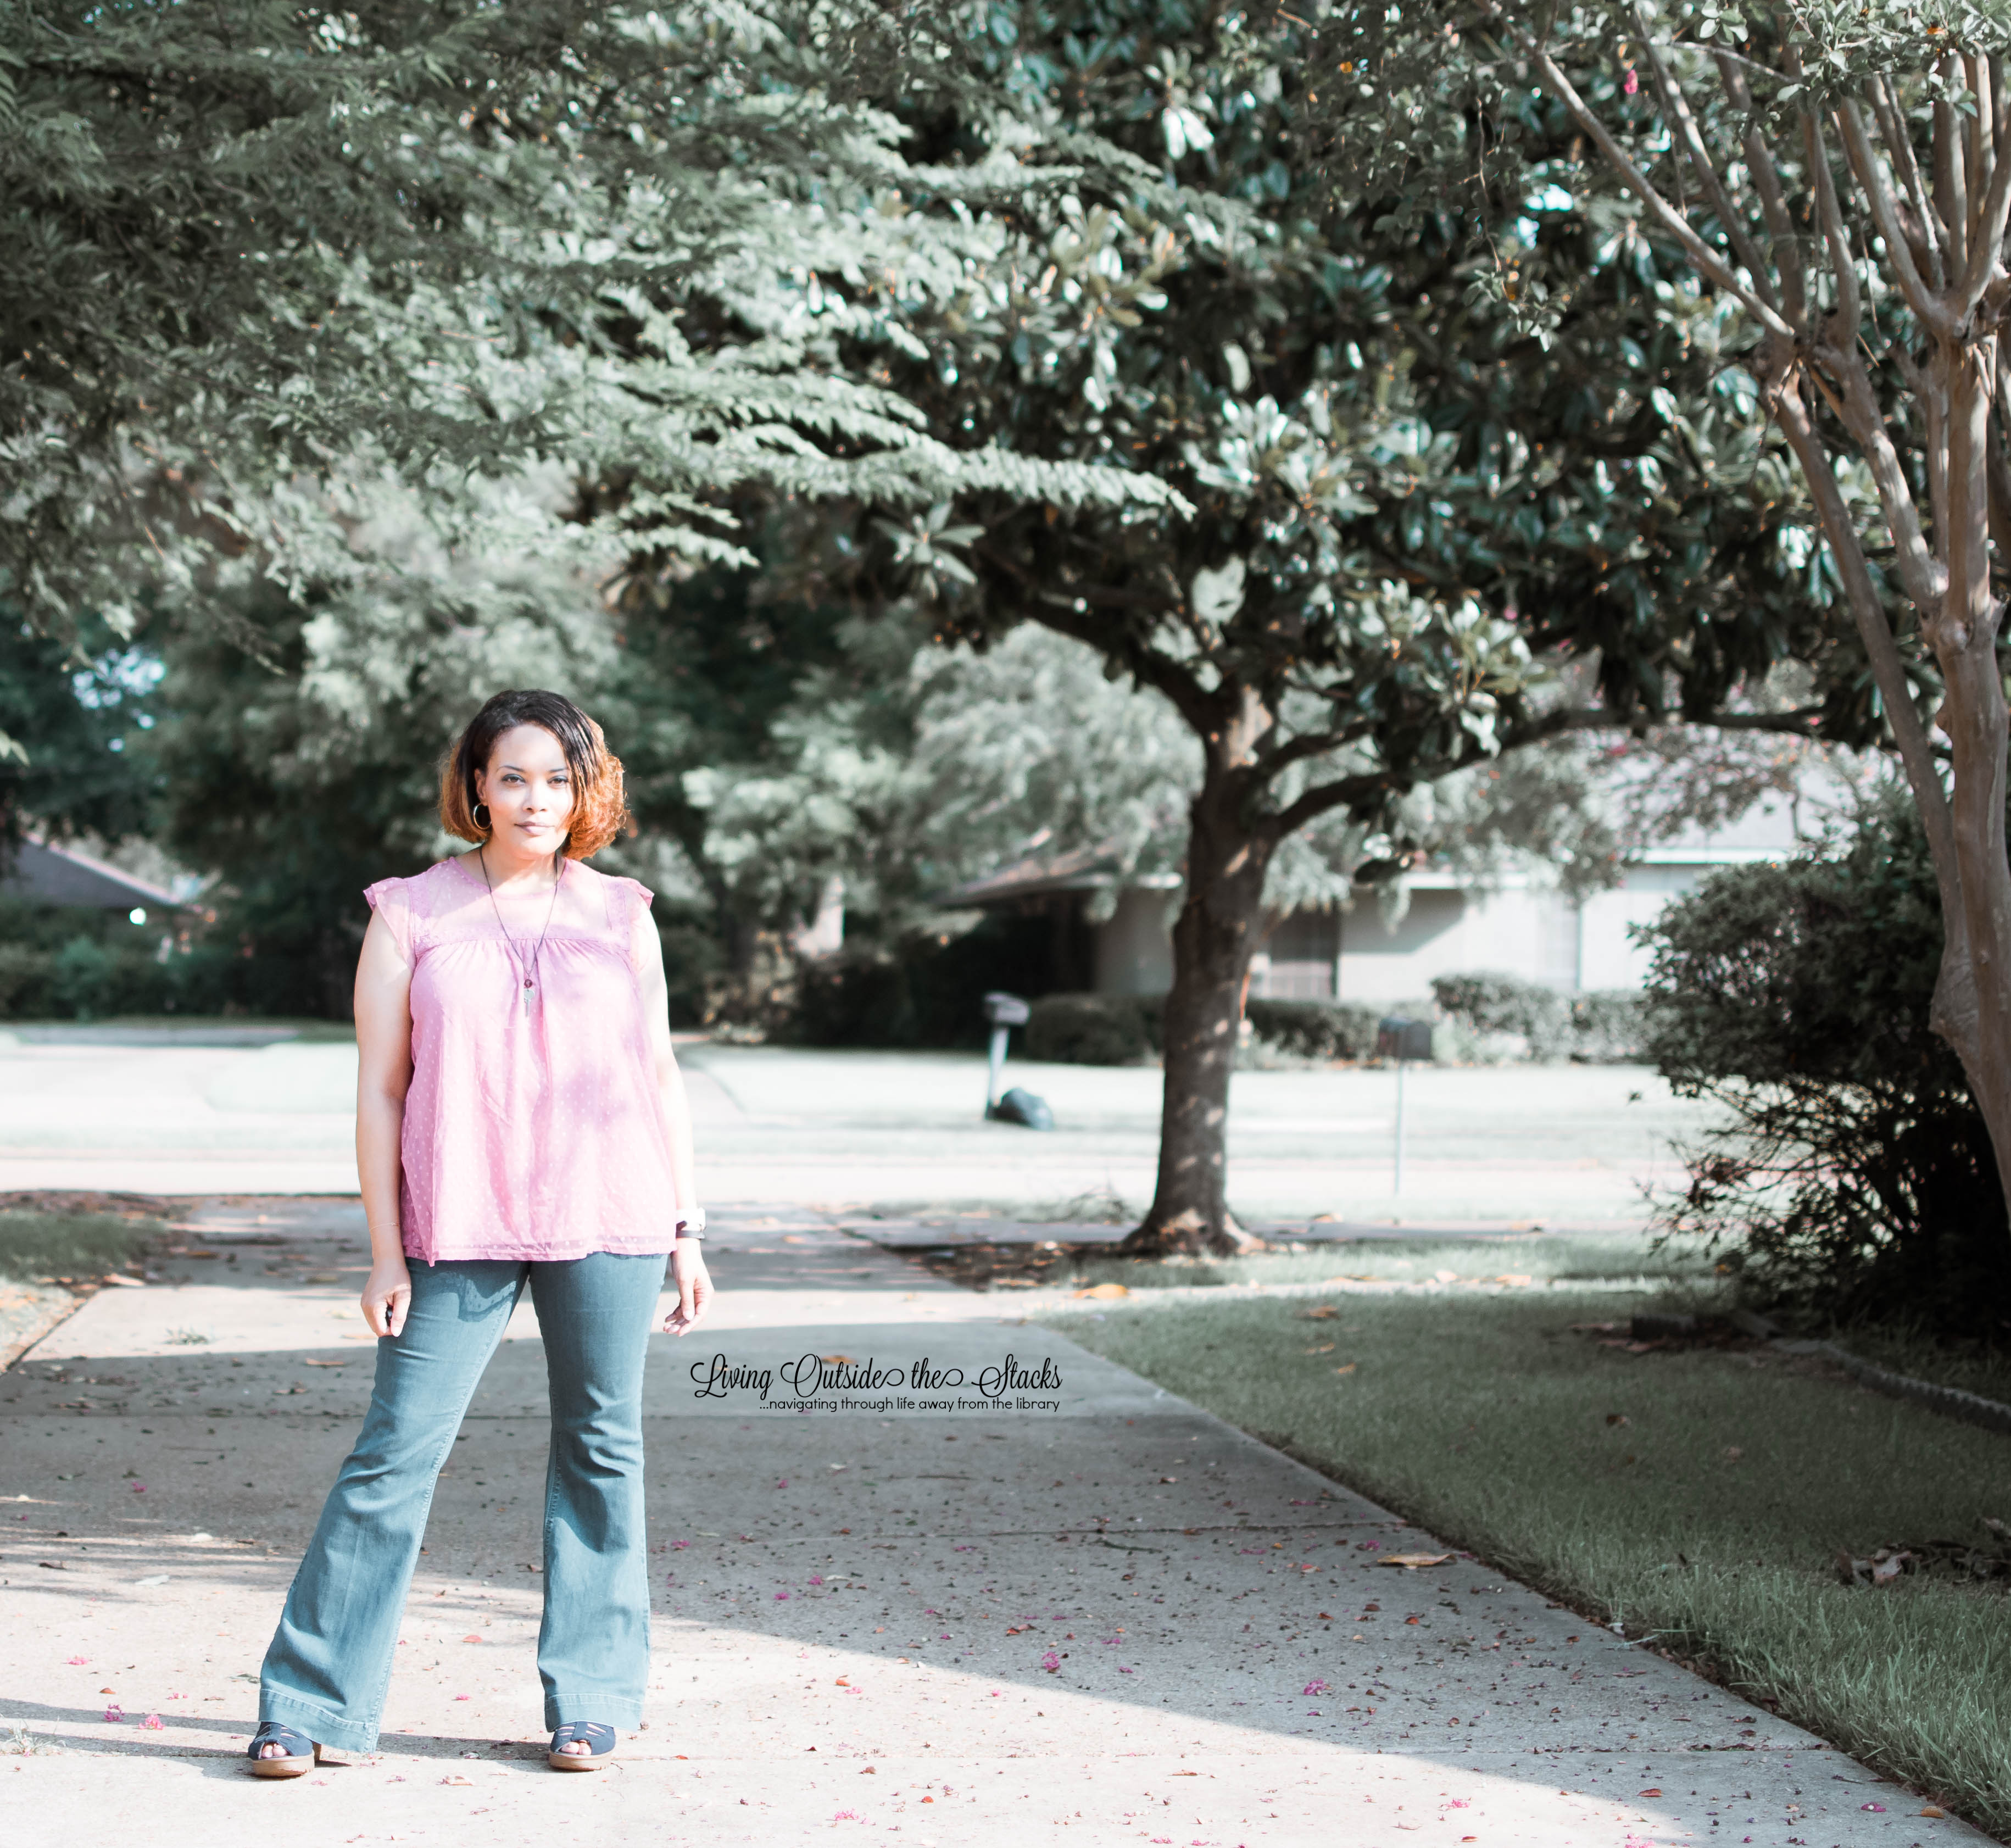 Pink Swiss Dot Baby Doll Top Laurie Felt Silky Curve Flare Leg Jeans and Blue Sketchers Sandals {living outside the stacks} #StyleImitatingArt